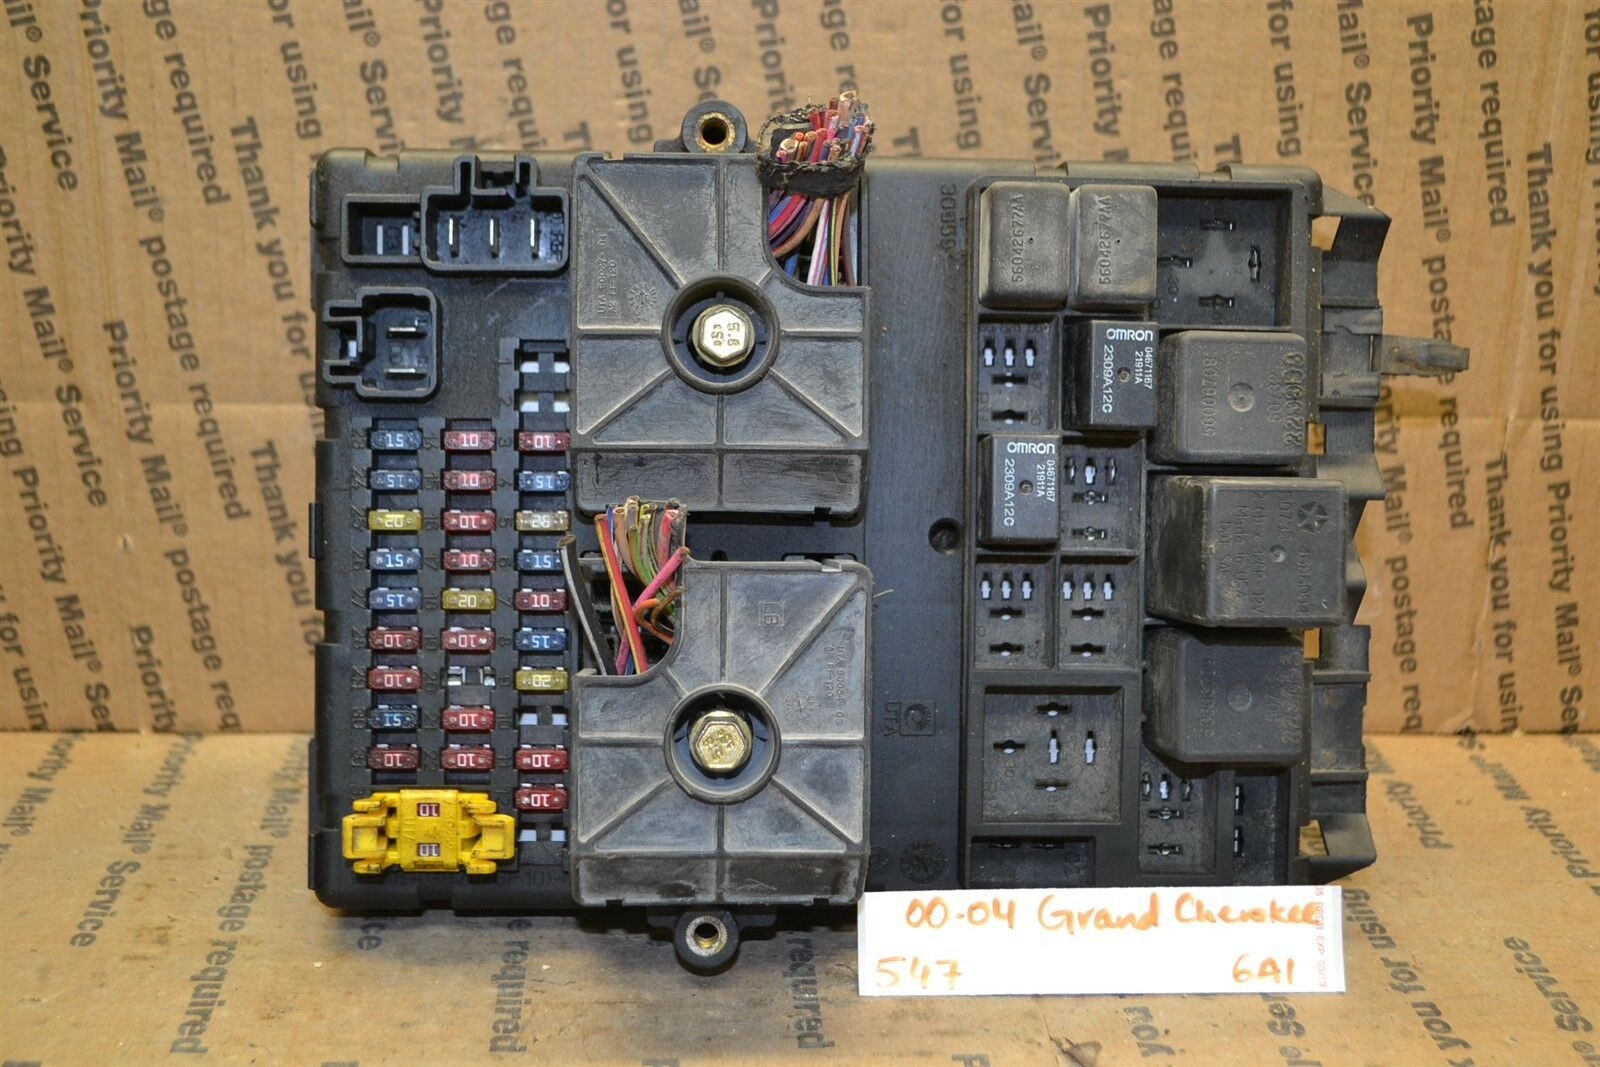 Used 2000 Jeep Grand Cherokee Computers Chips Cruise Control And 2010 Fuse Box 2004 Junction Oem 56042148ag Module 547 6a1